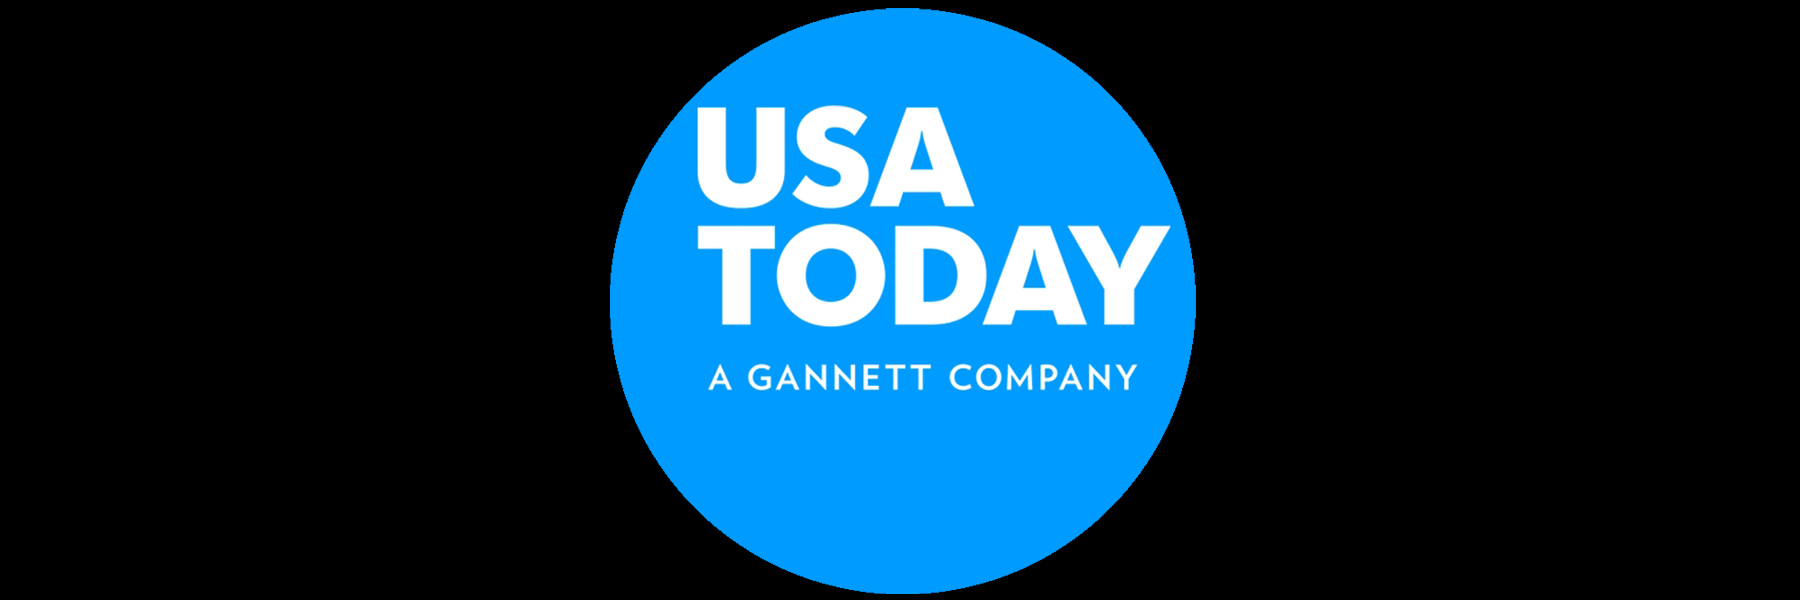 USA Today Button.jpg